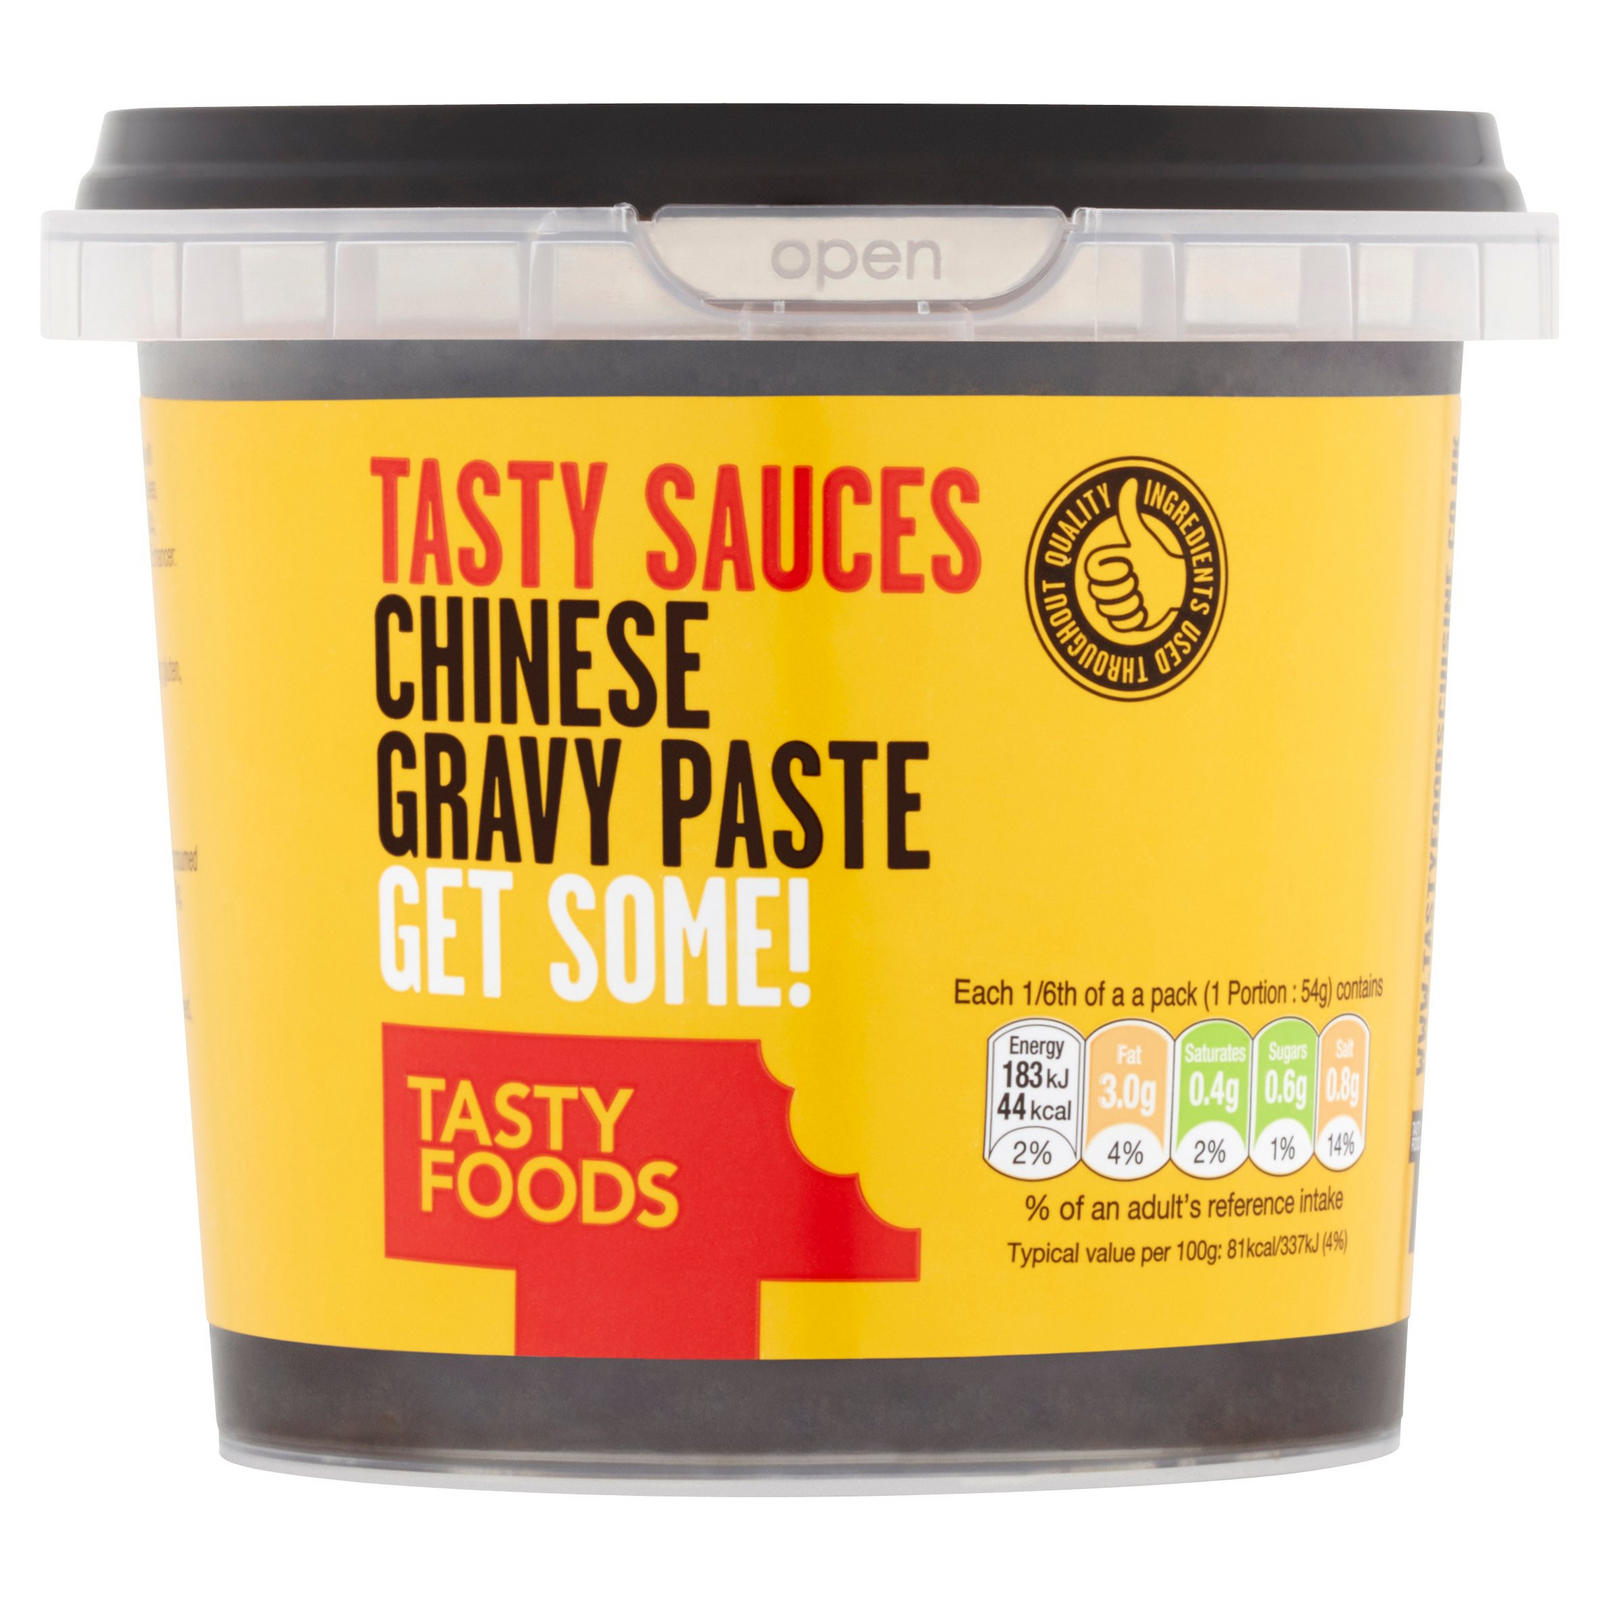 Tasty Foods Tasty Sauces Chinese Gravy Paste 325g | Gravy